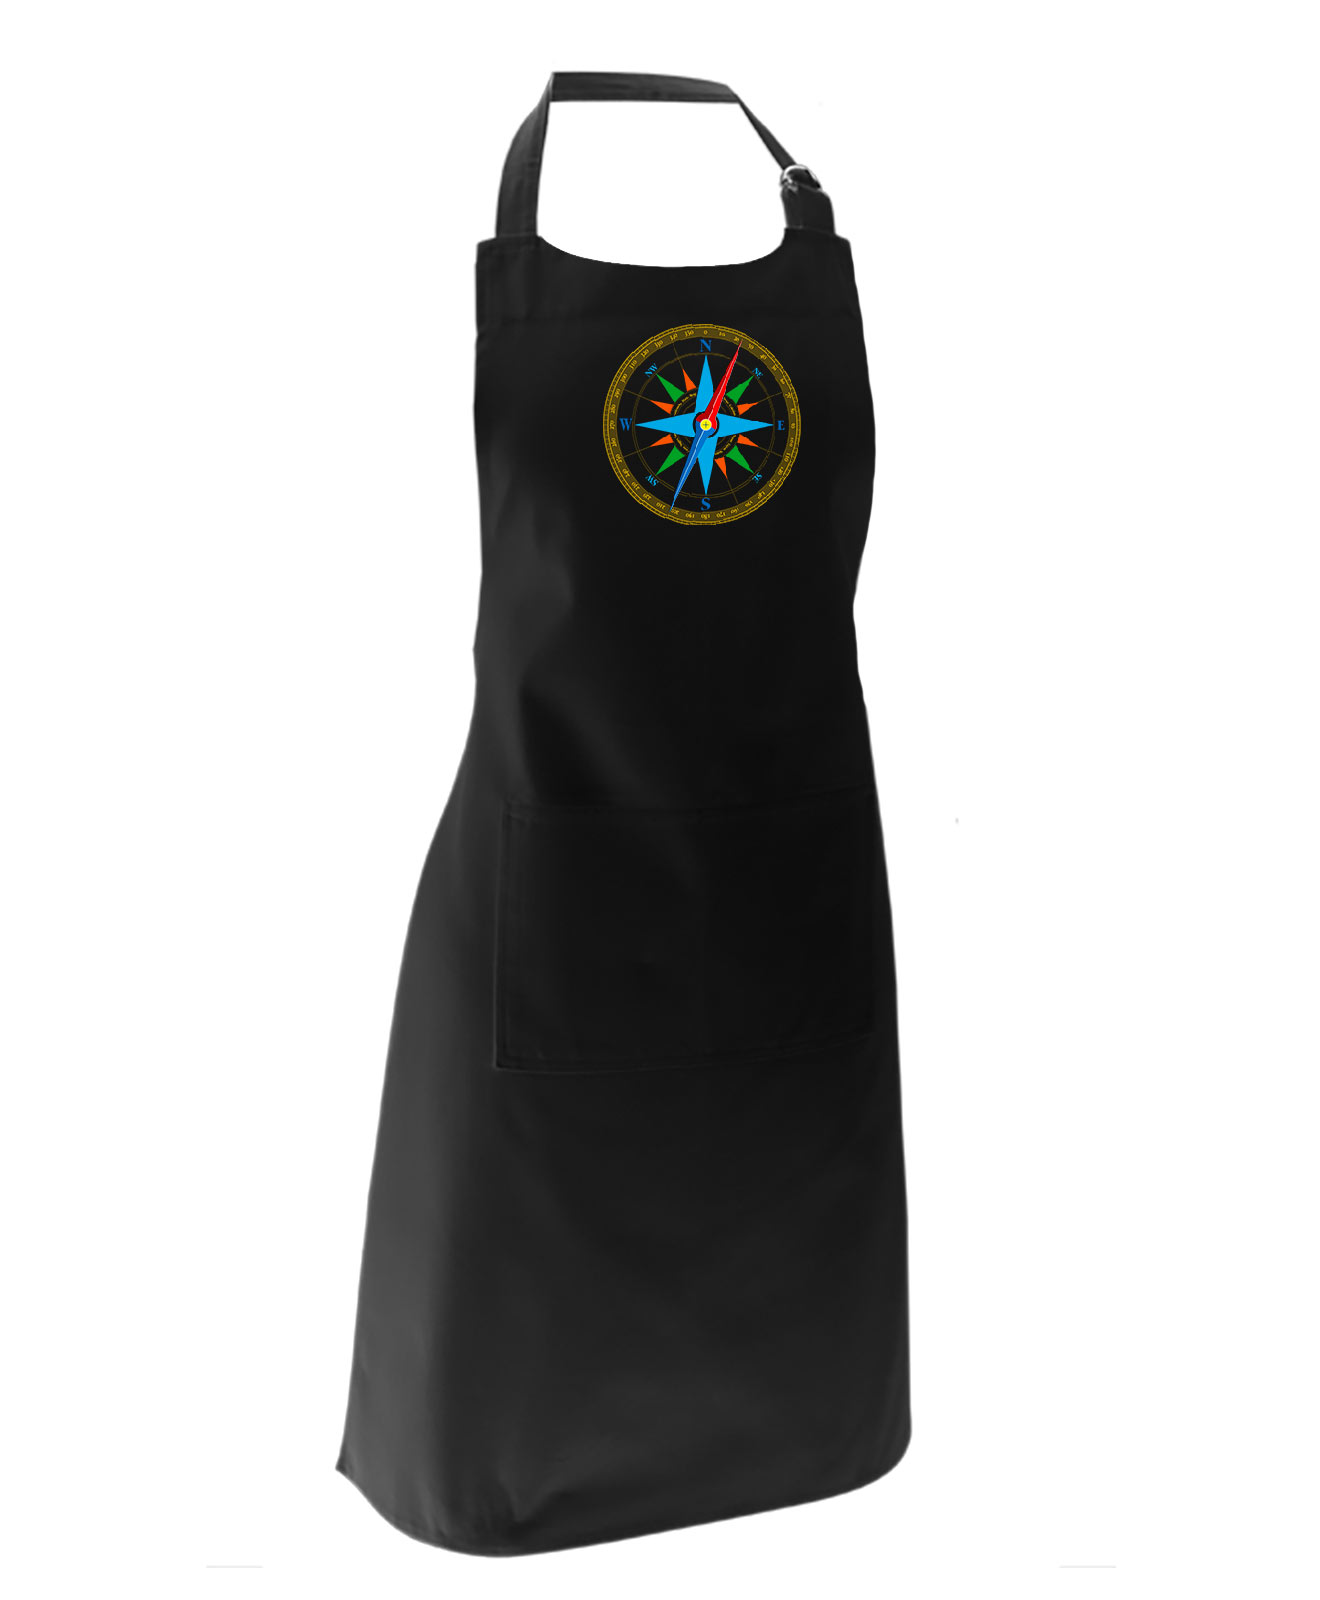 wind rose black apron